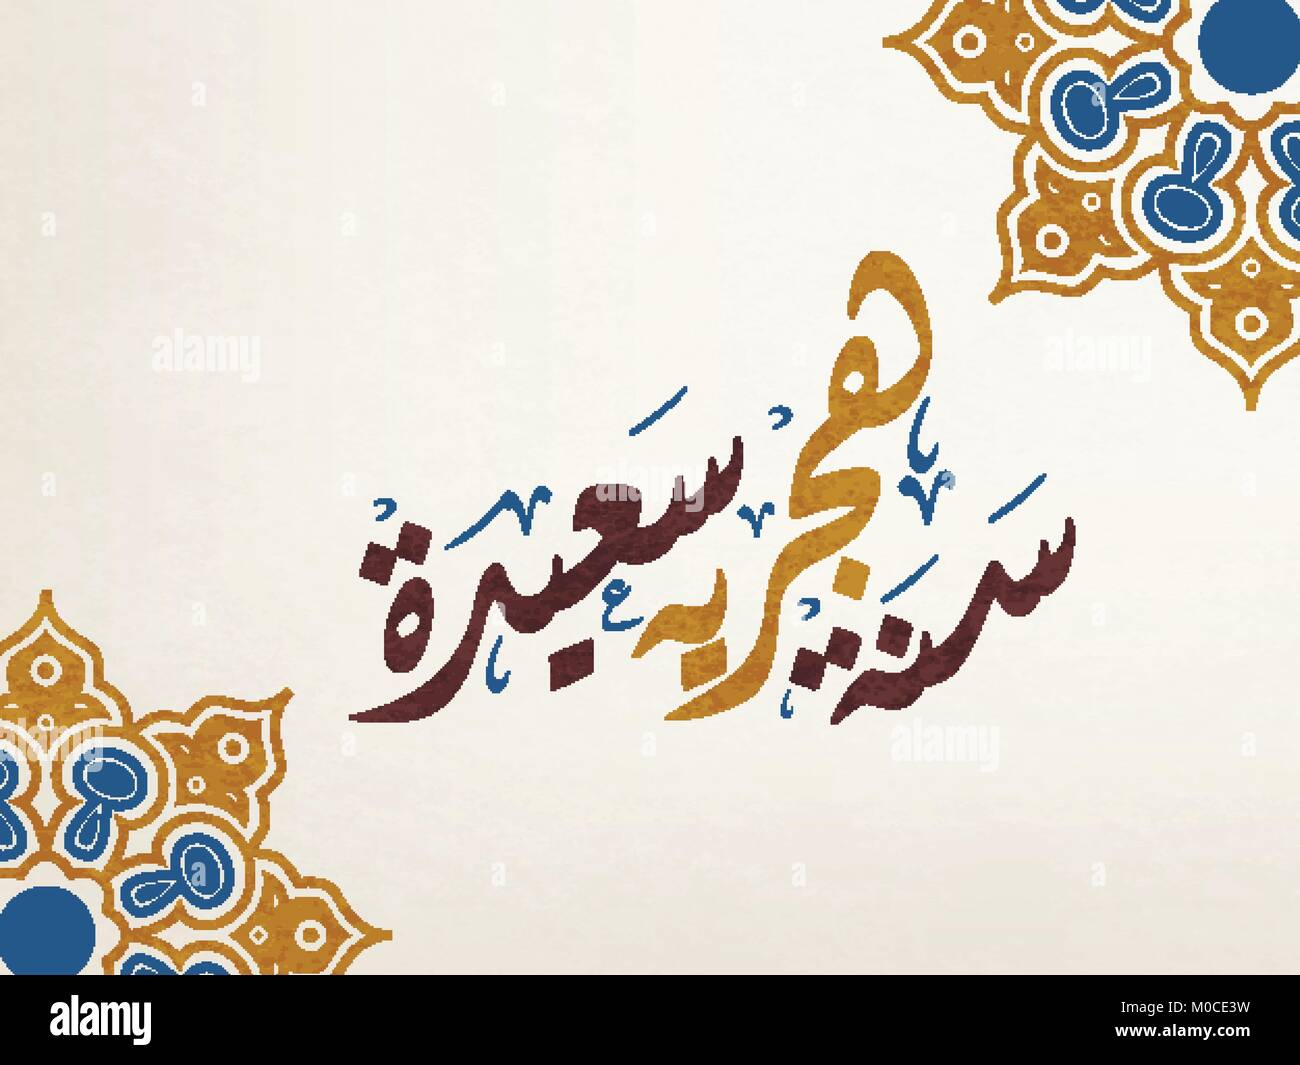 Happy new islamic year blessed hijri new year in arabic calligraphy happy new islamic year blessed hijri new year in arabic calligraphy type vintage background and creative type calligraphy greeting m4hsunfo